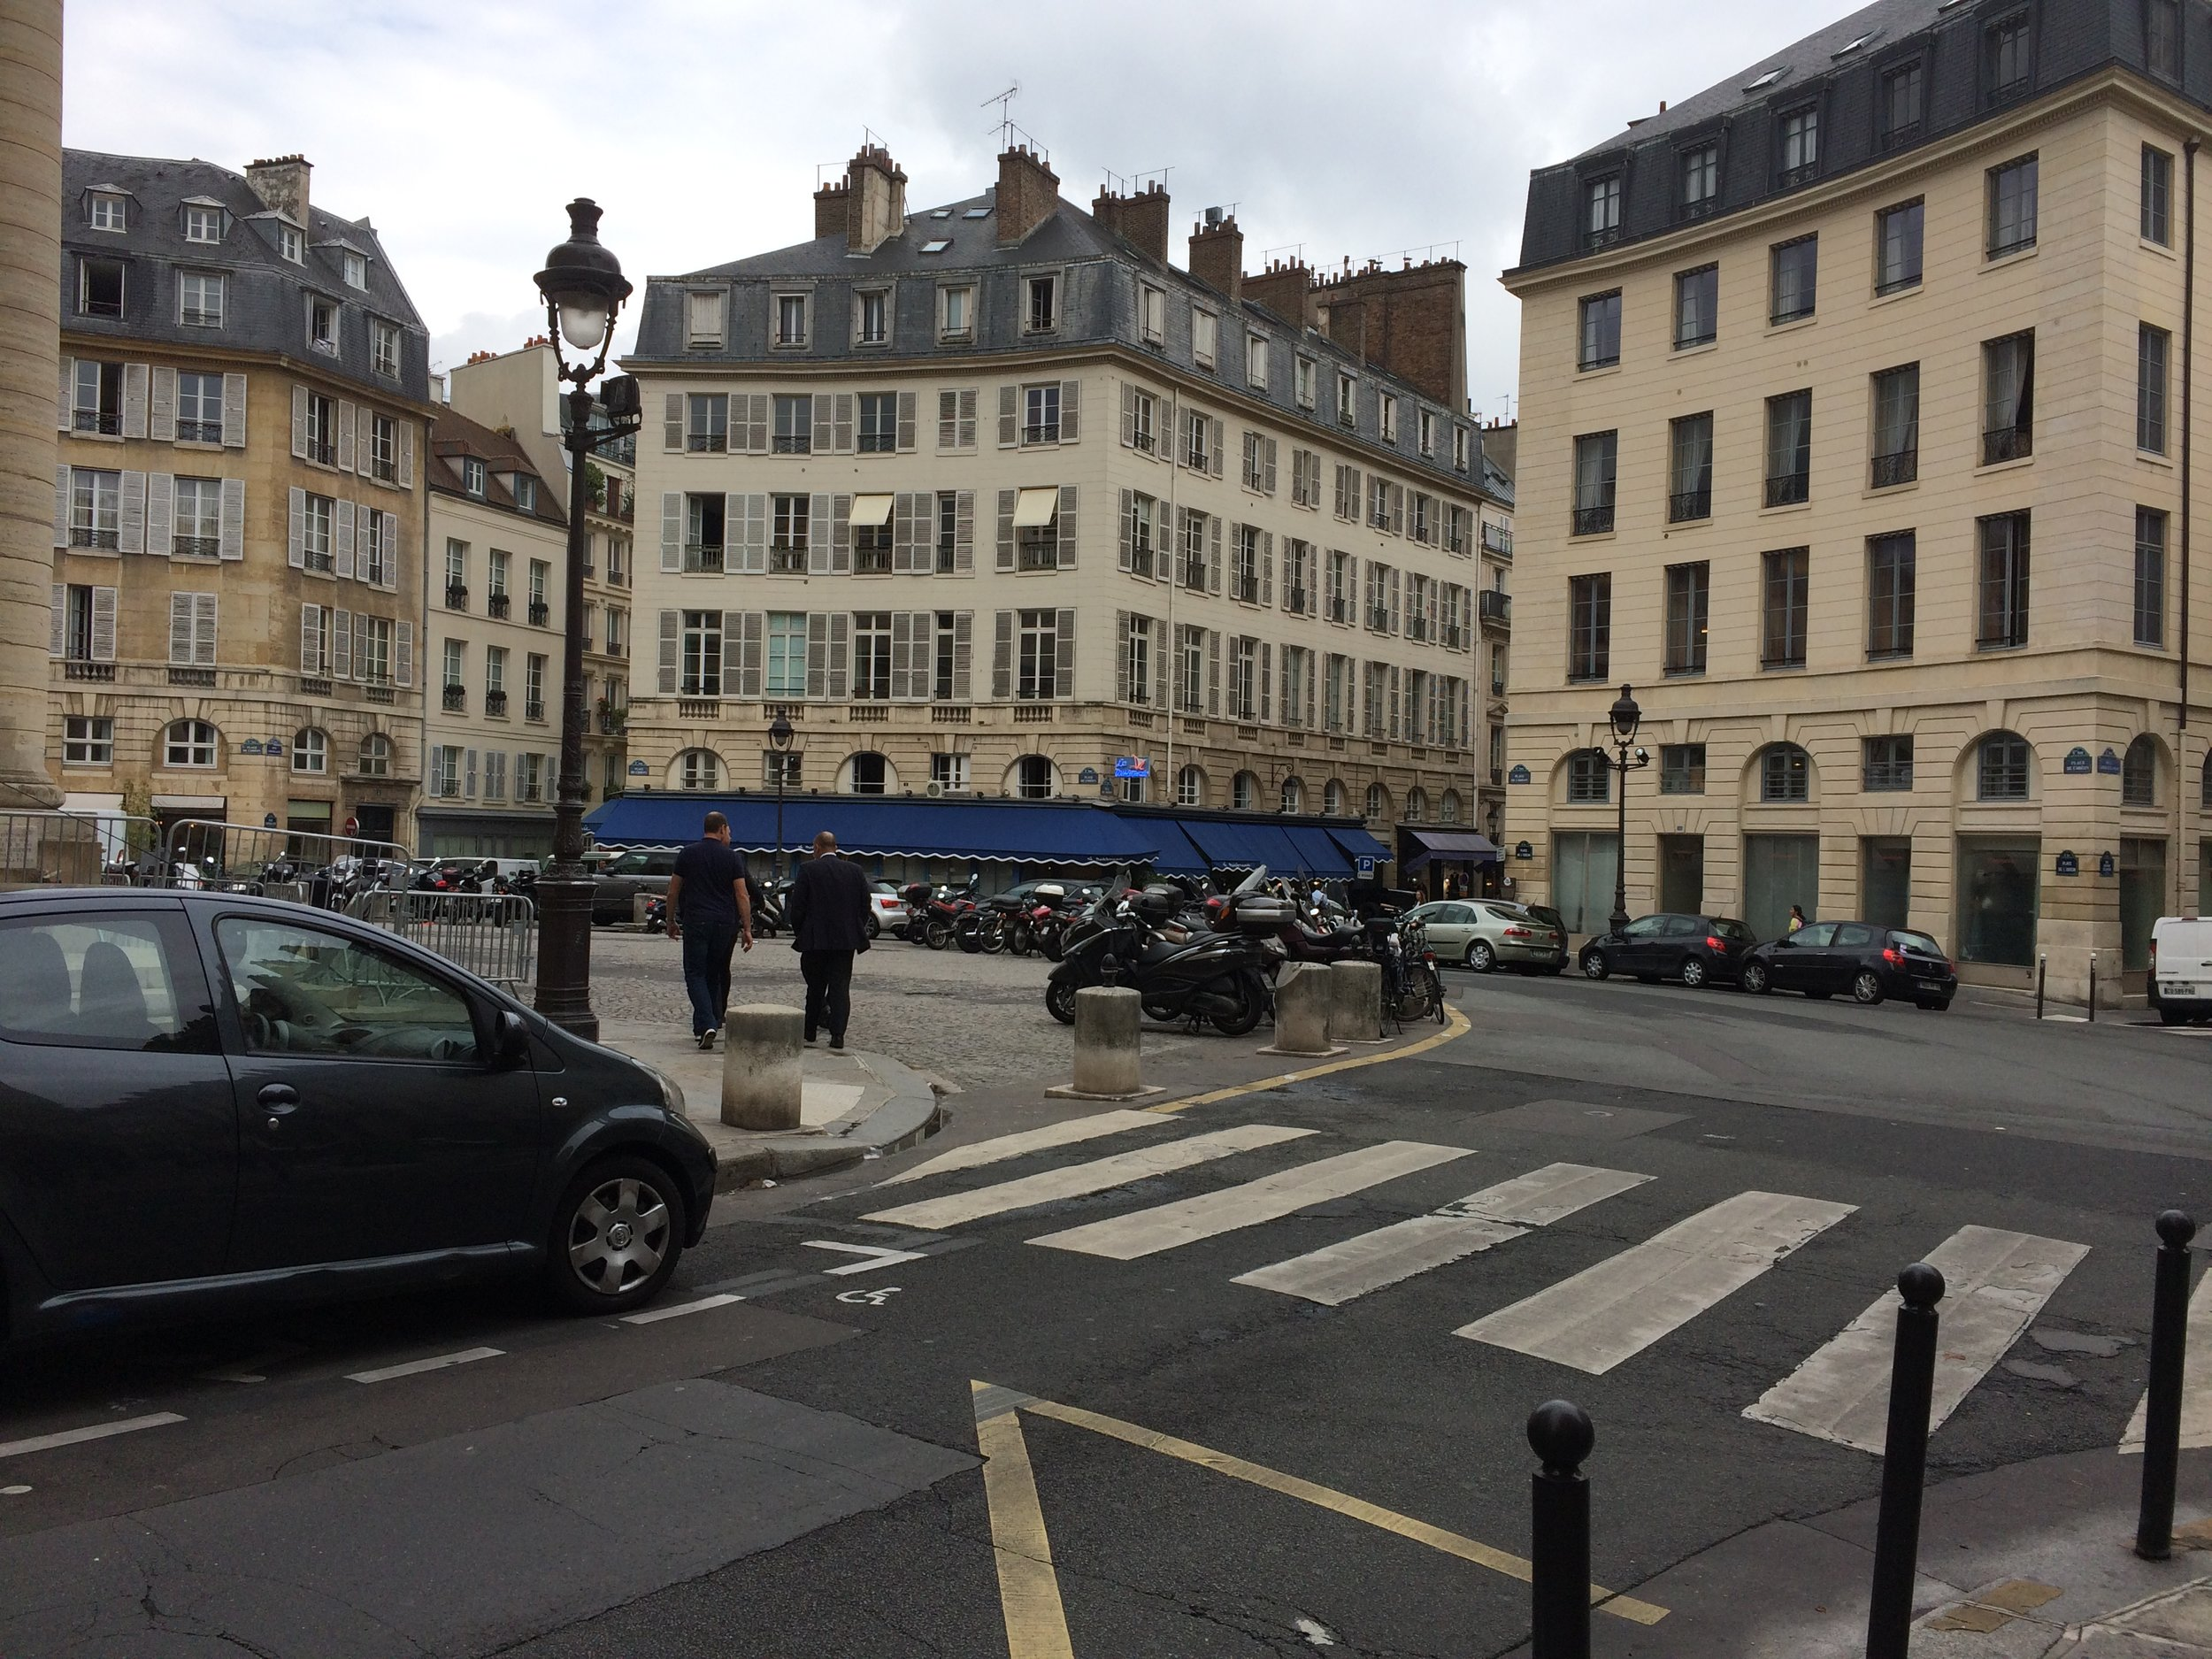 Parisian streets, nearby our hotel